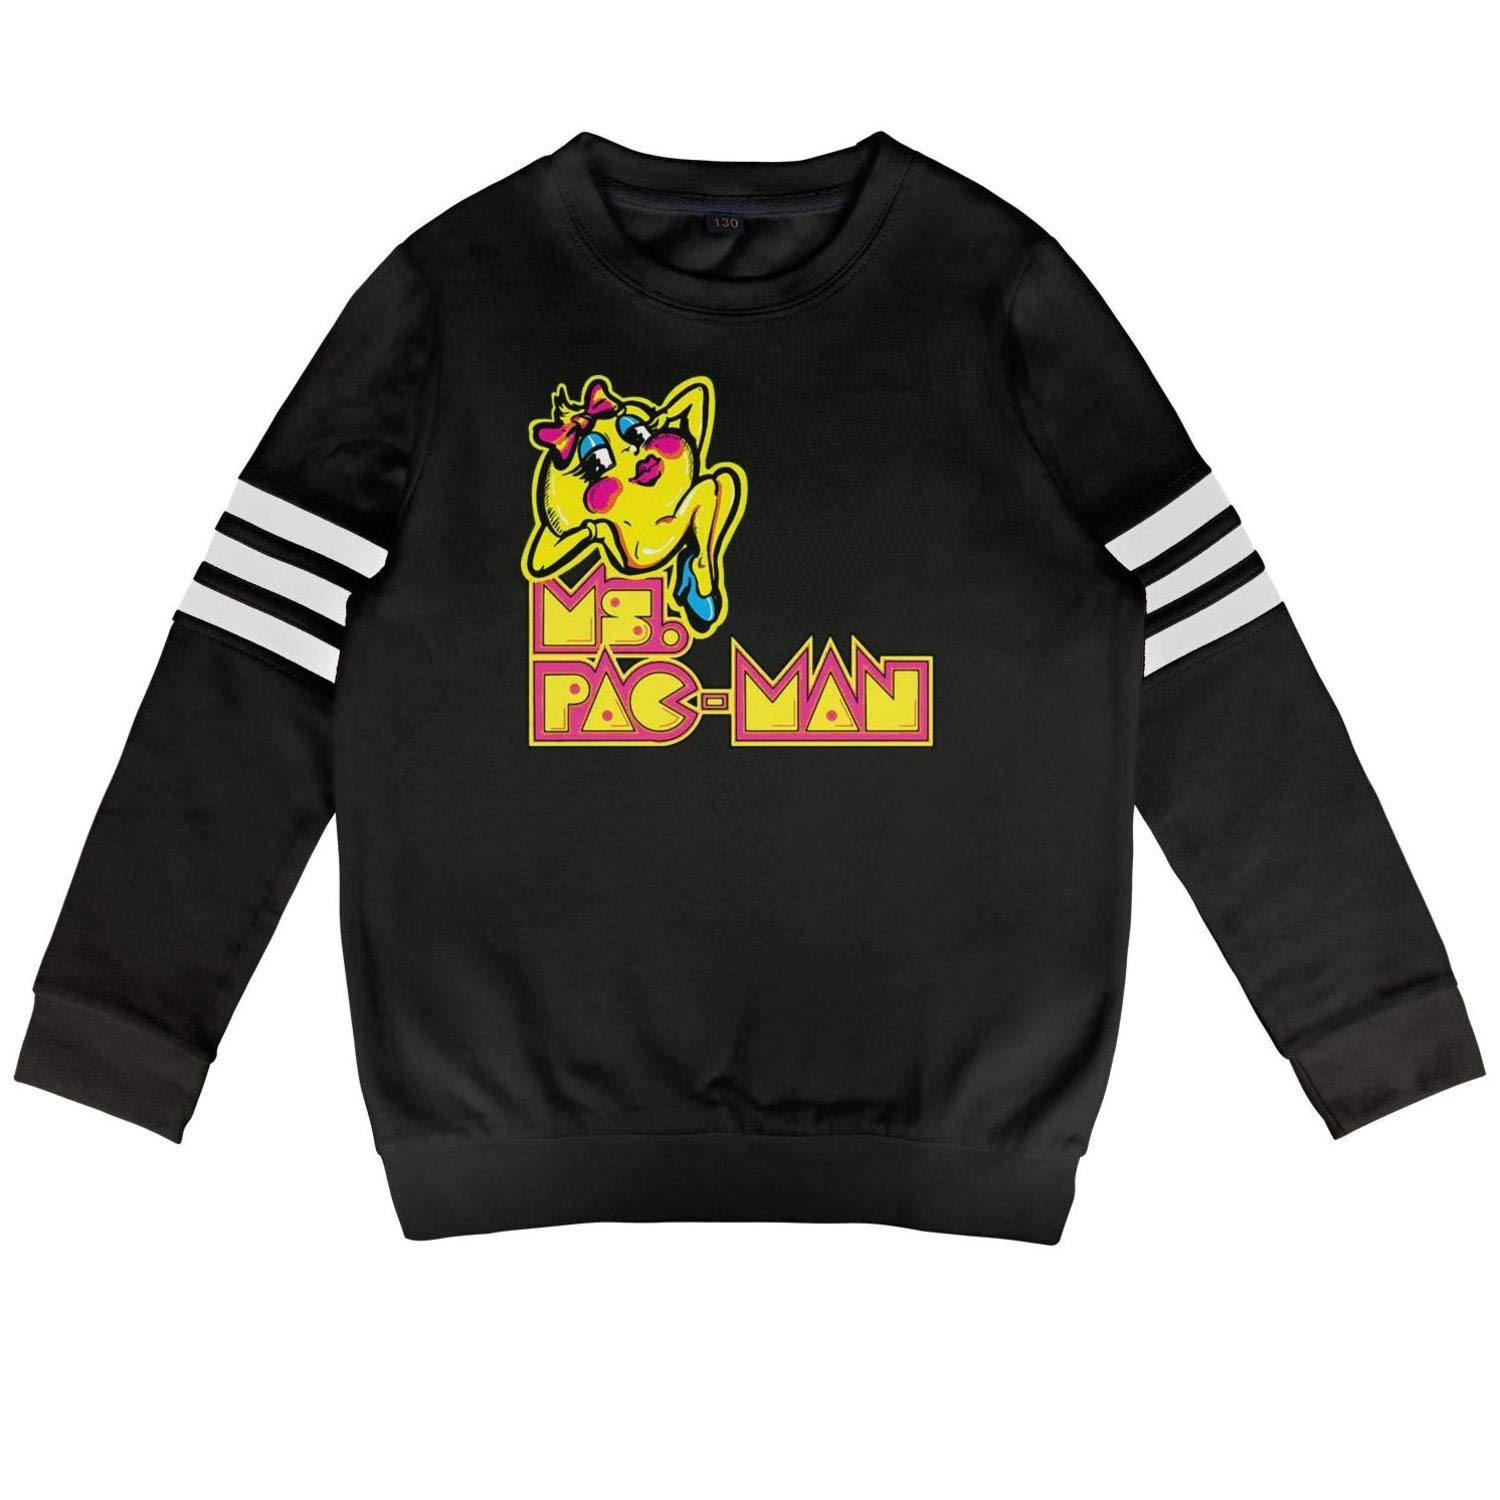 26b6c6408 Amazon.com: Pac-Man-Eating-Pizza- Boys Girls Hoodie Sweatshirt ...